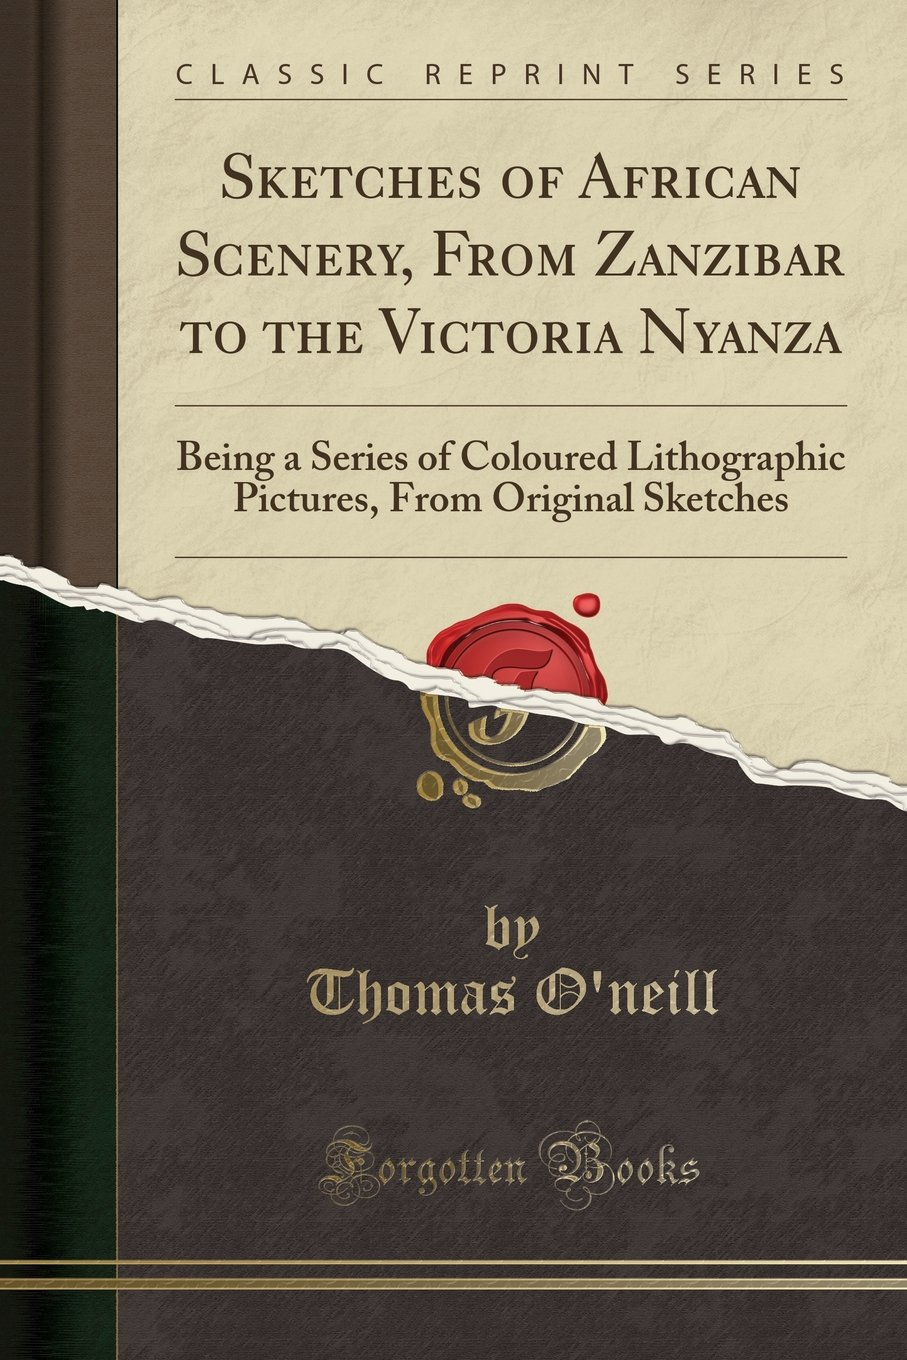 Sketches of African Scenery, From Zanzibar to the Victoria Nyanza: Being a Series of Coloured Lithographic Pictures, From Original Sketches (Classic Reprint)